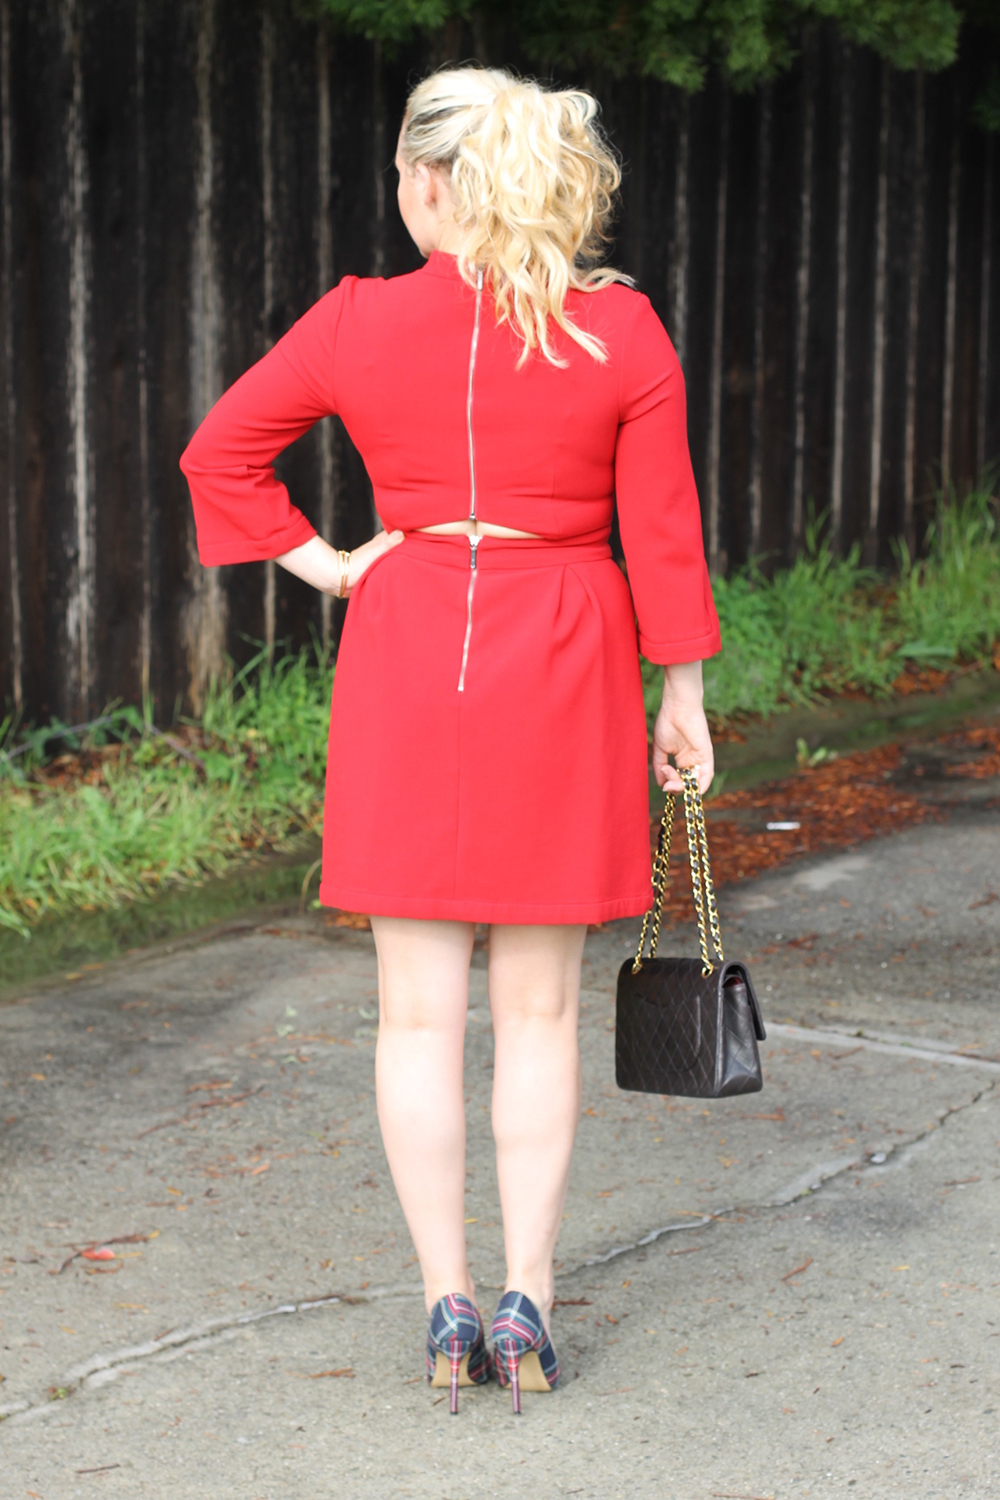 nicole-miller-lady-in-red-red-dress-holiday-style-outfit-inspiration-have-need-want-12